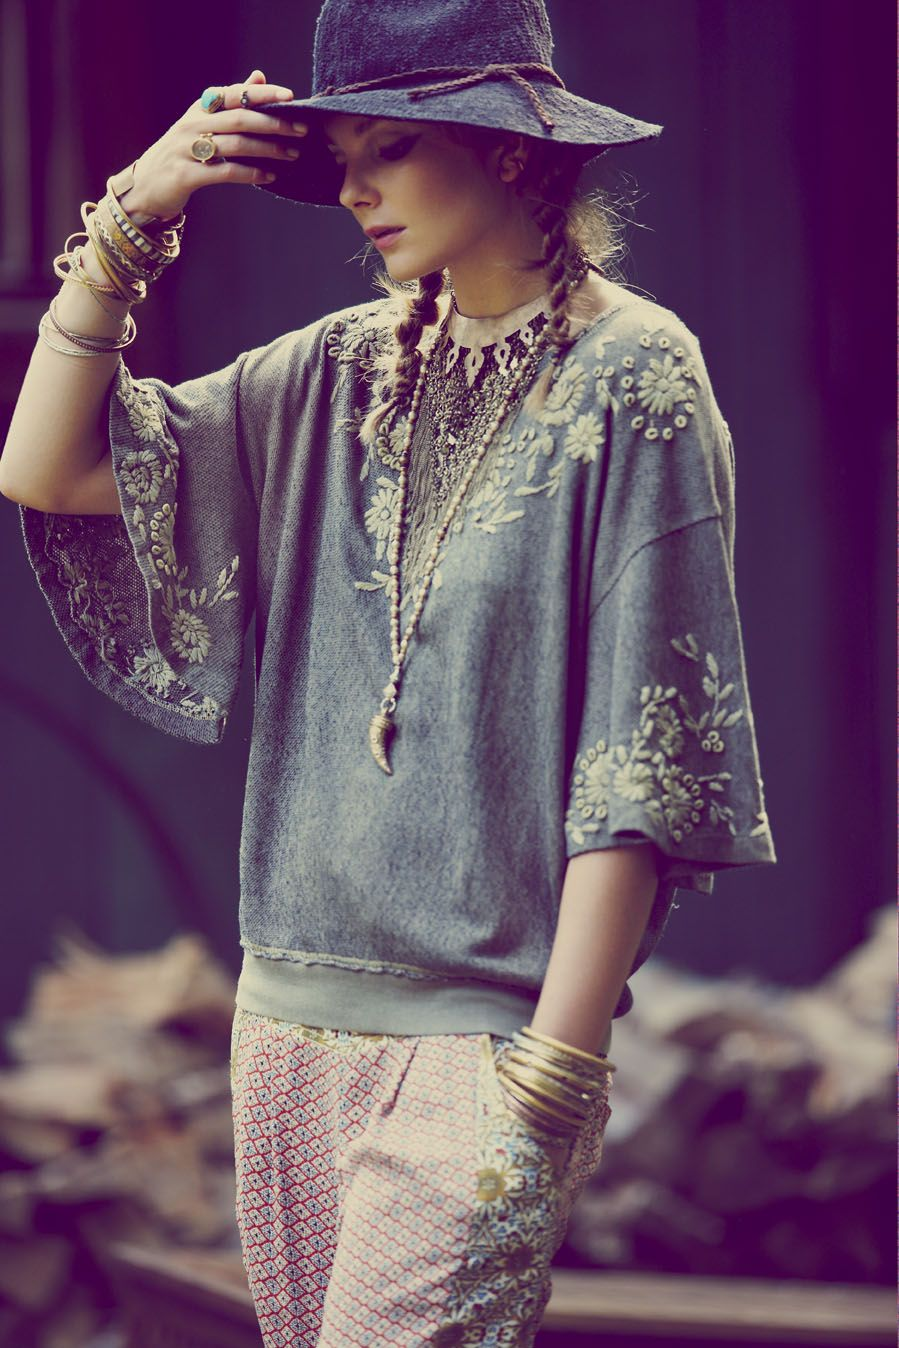 Rambling Rose eclectic fashion #style #lovely #chic